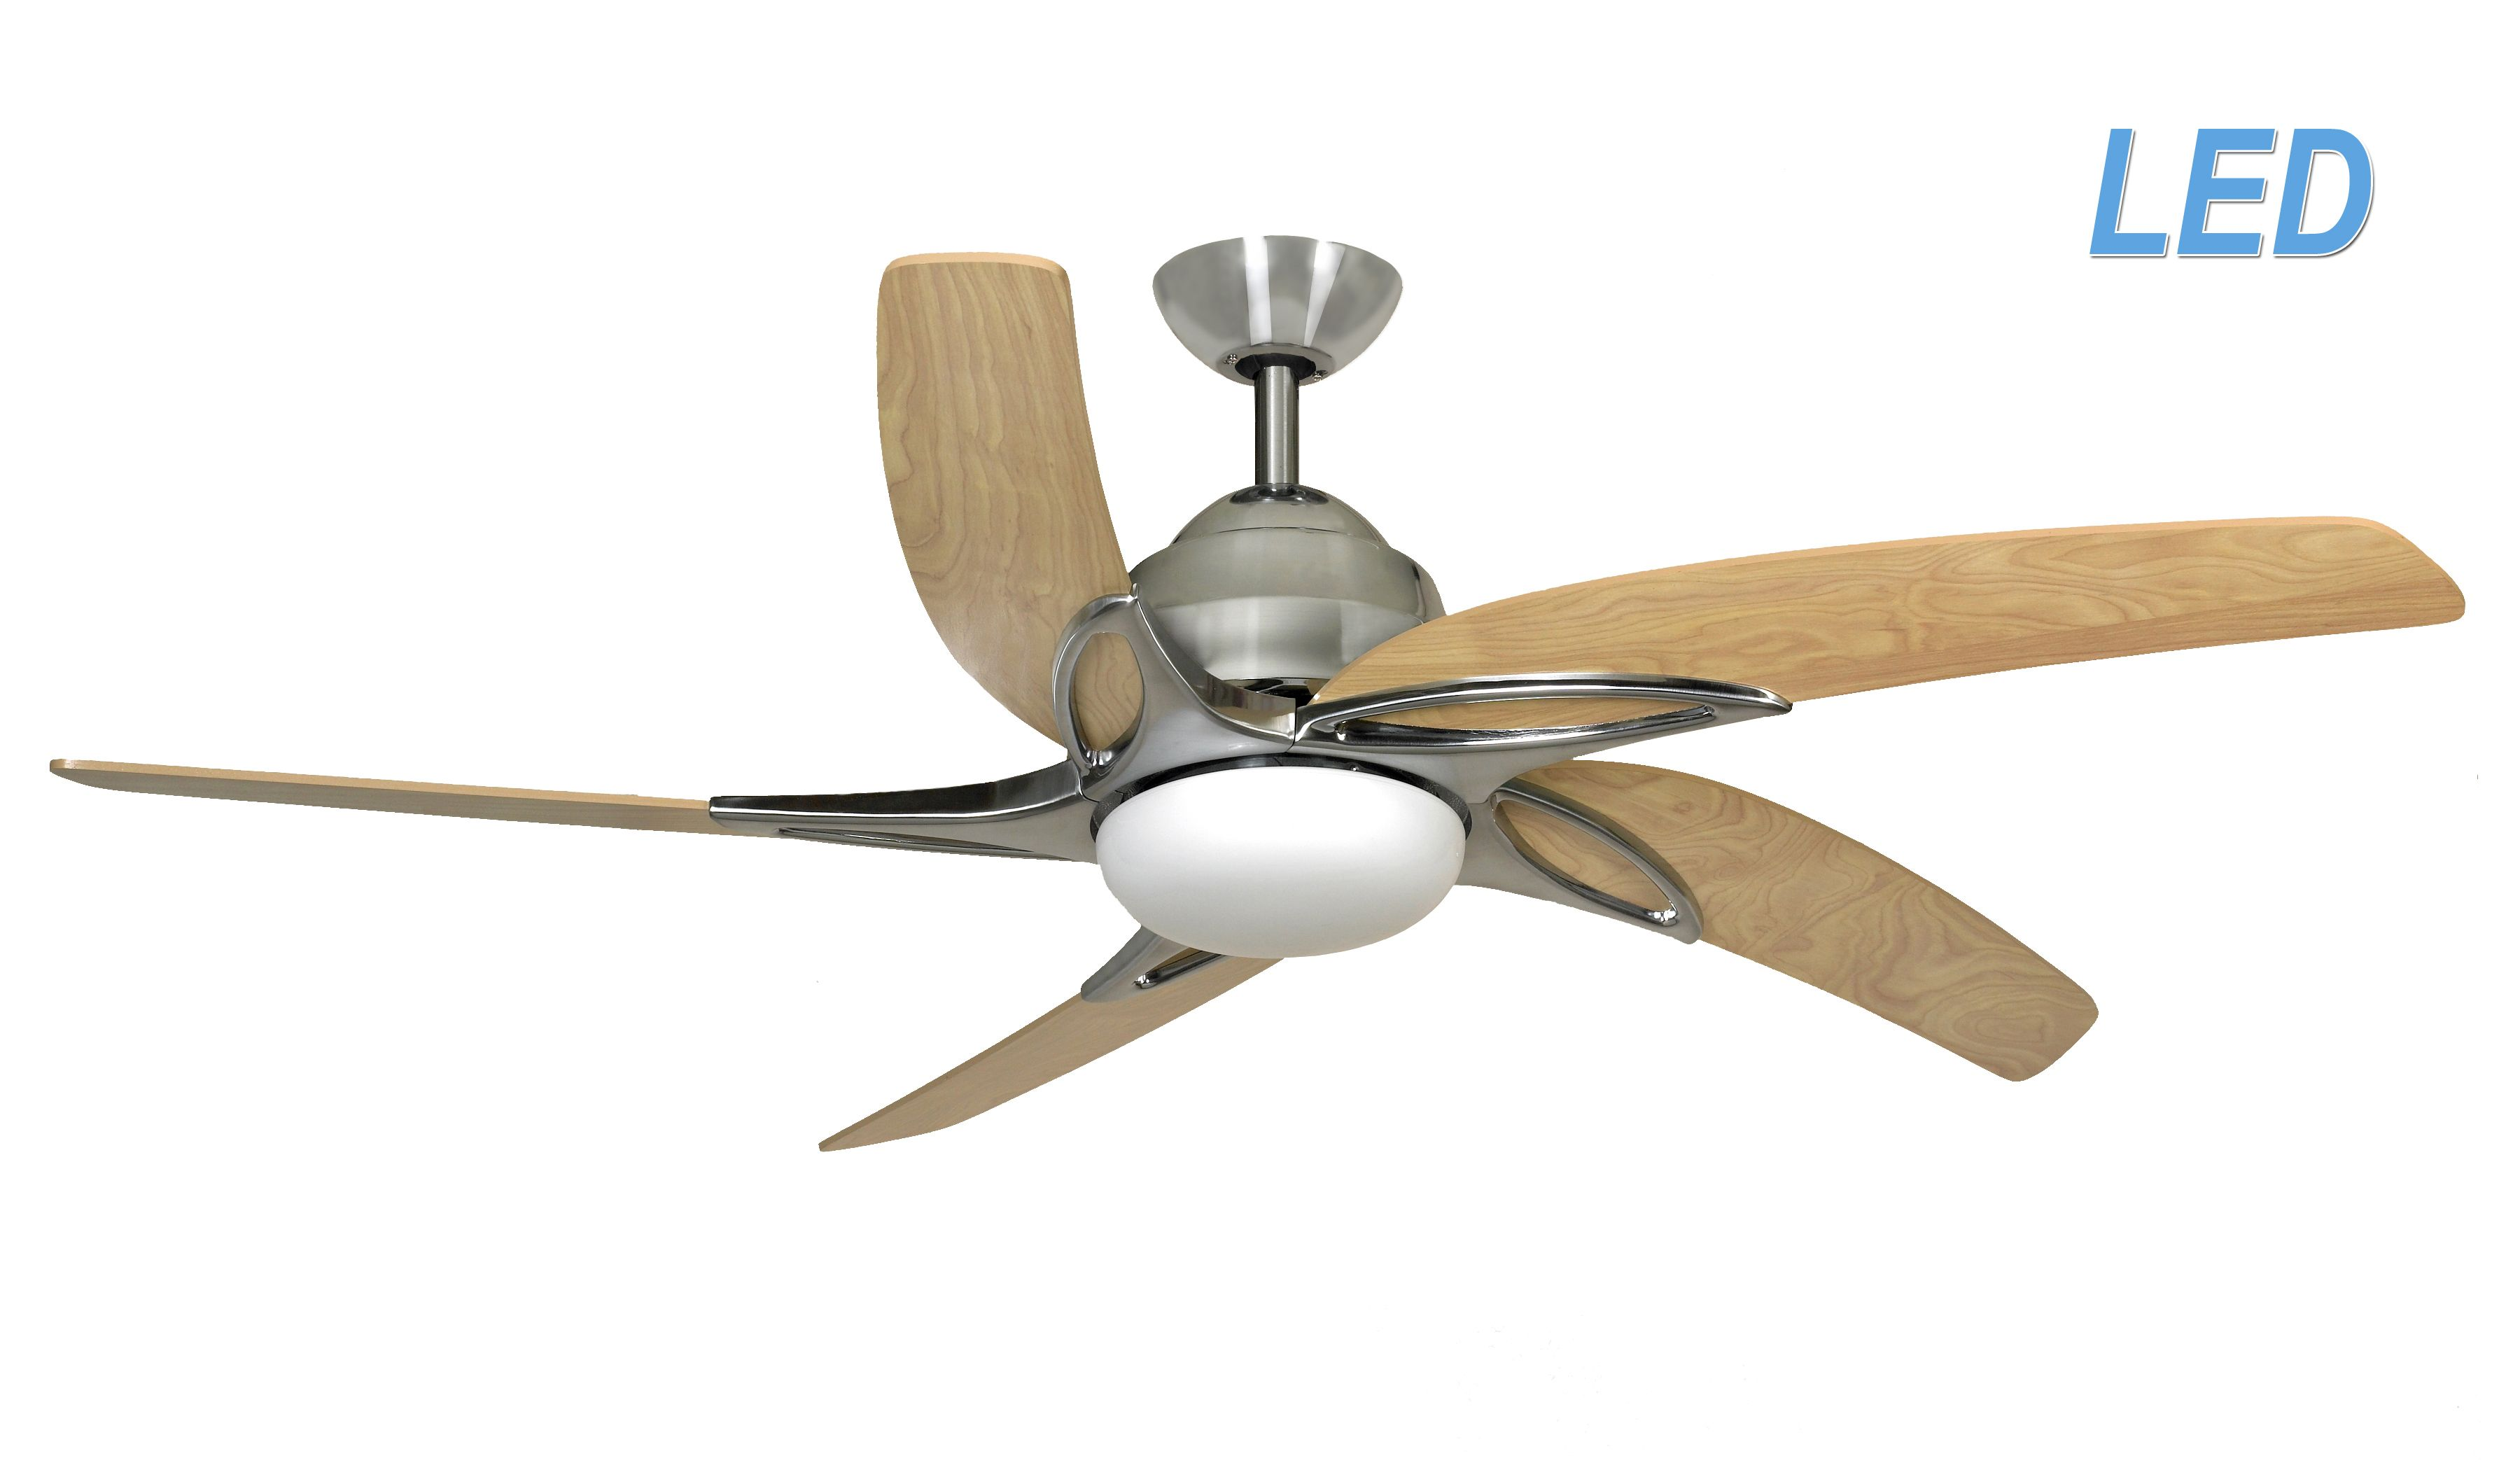 Fantasia Viper 44 Stainless Steel Ceiling Fan Remote Control LED